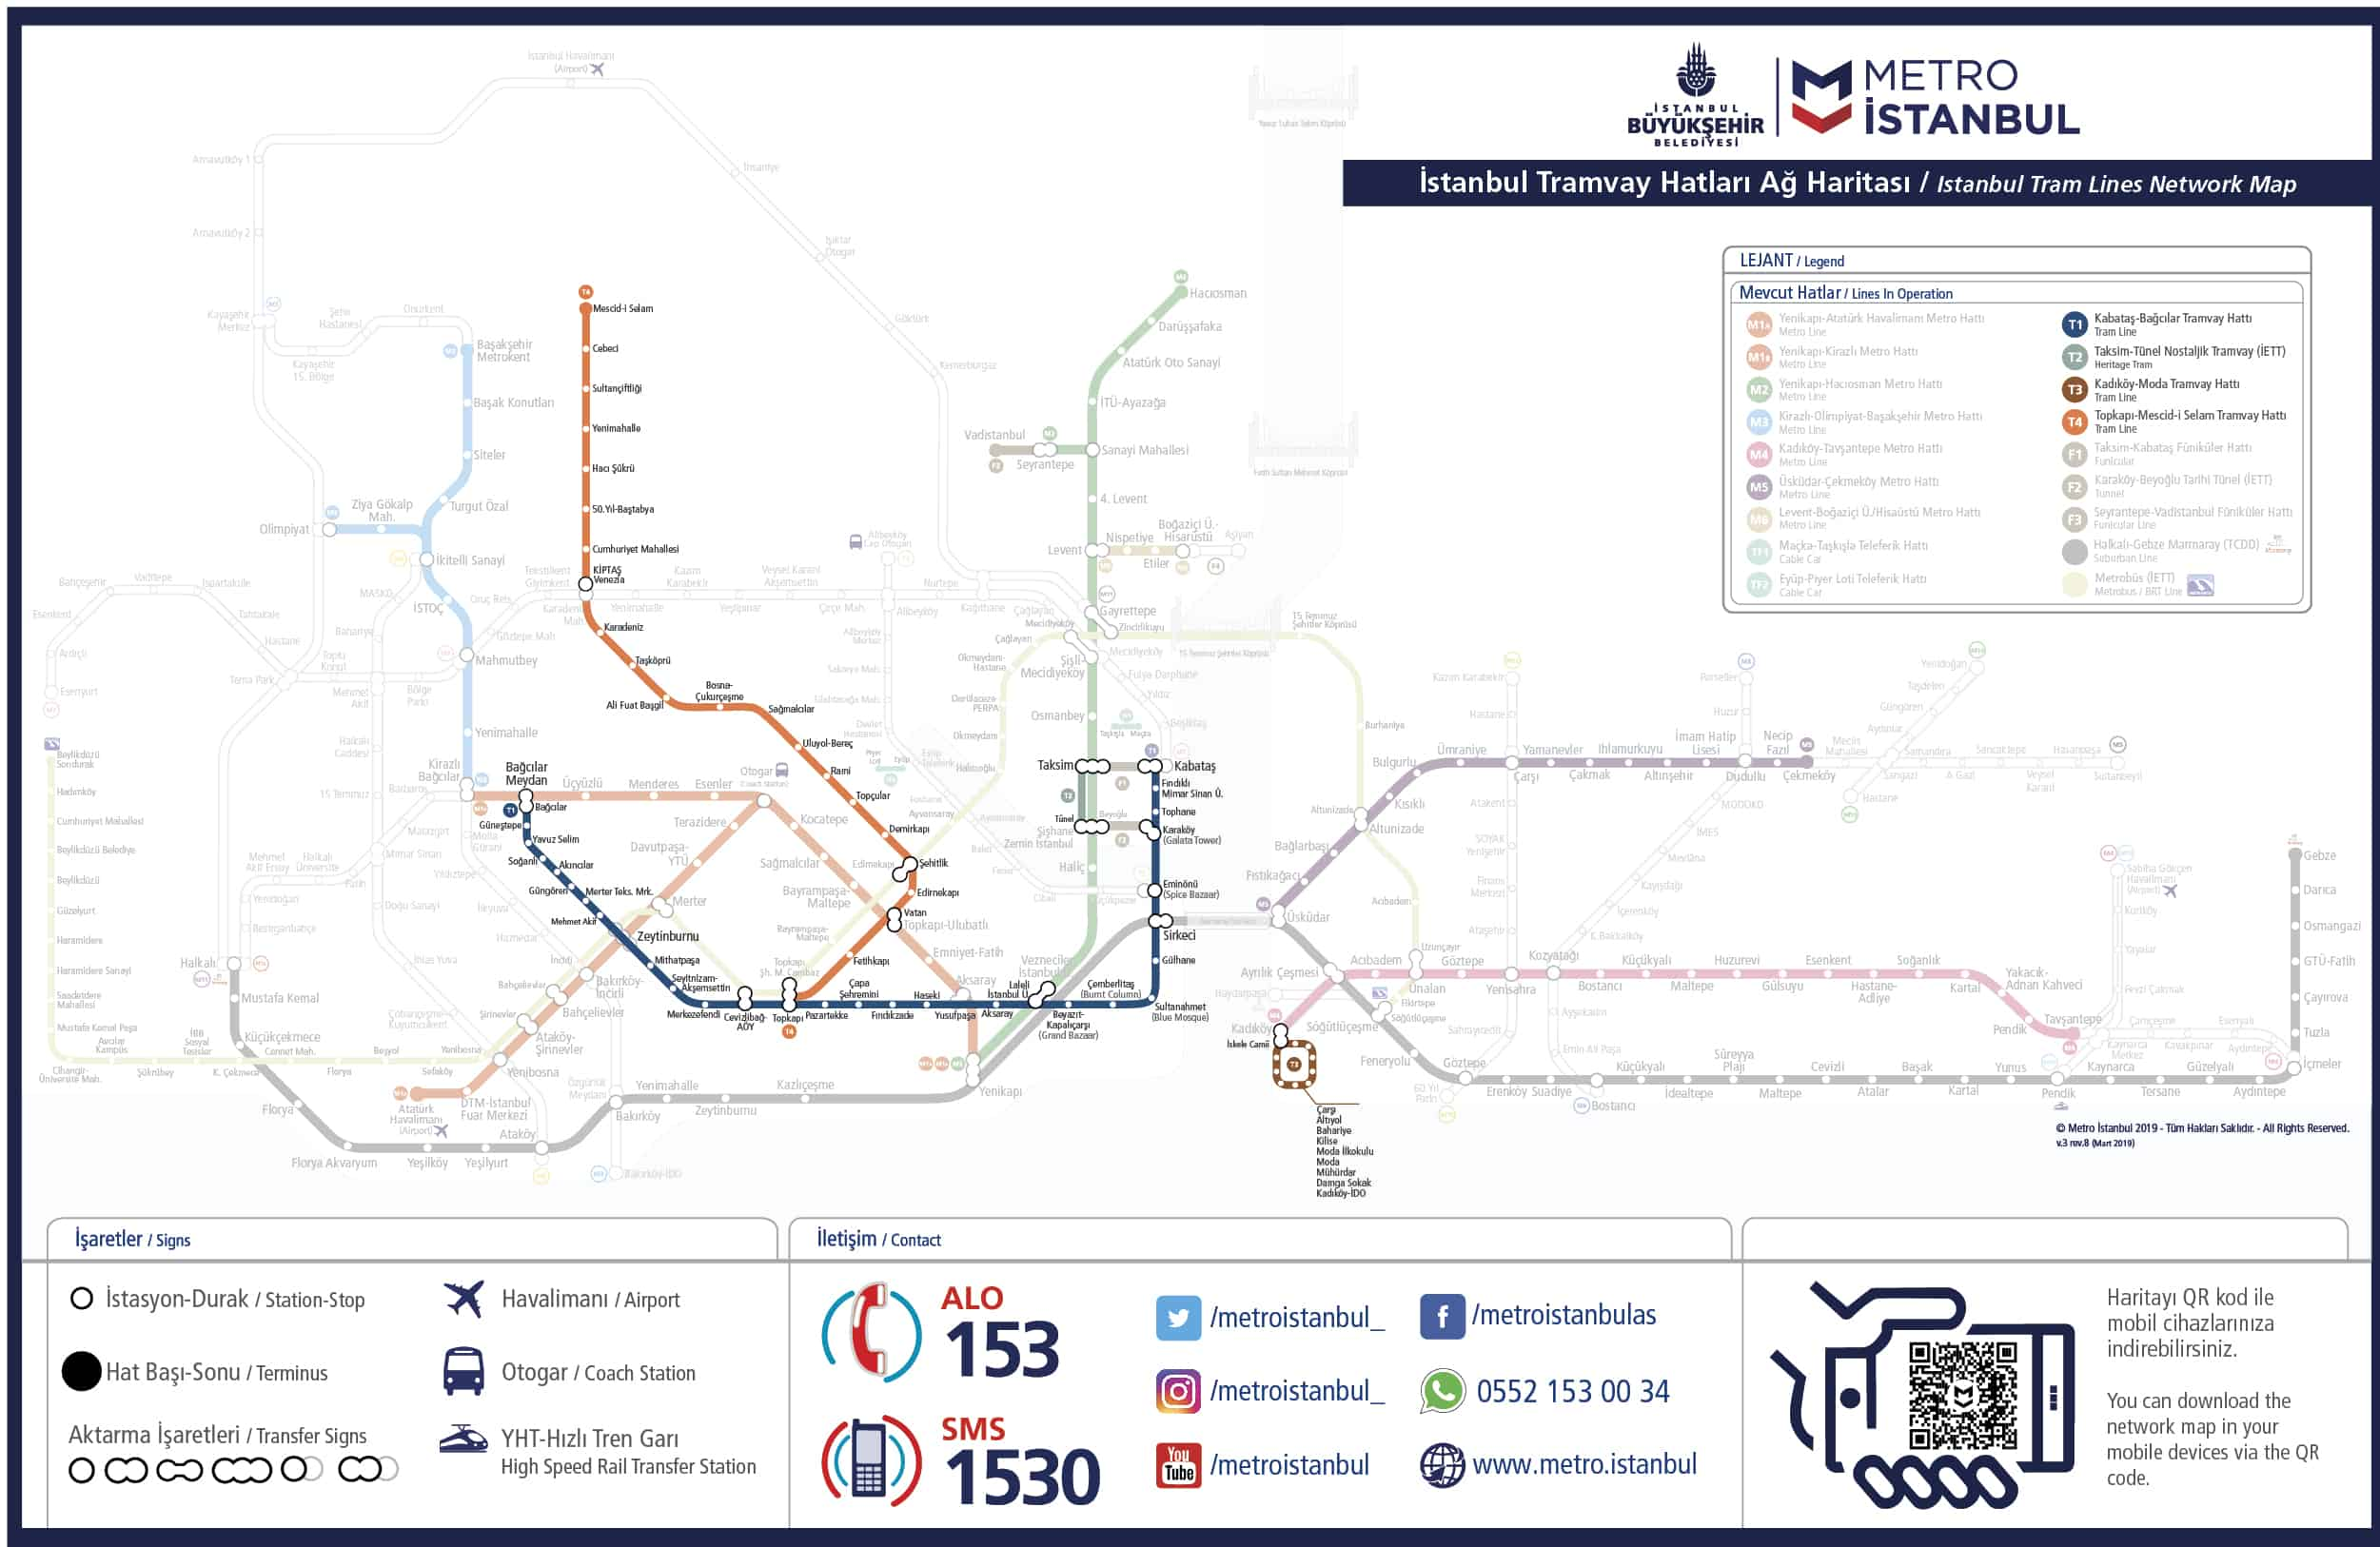 Istanbul Tram Lines Network Map